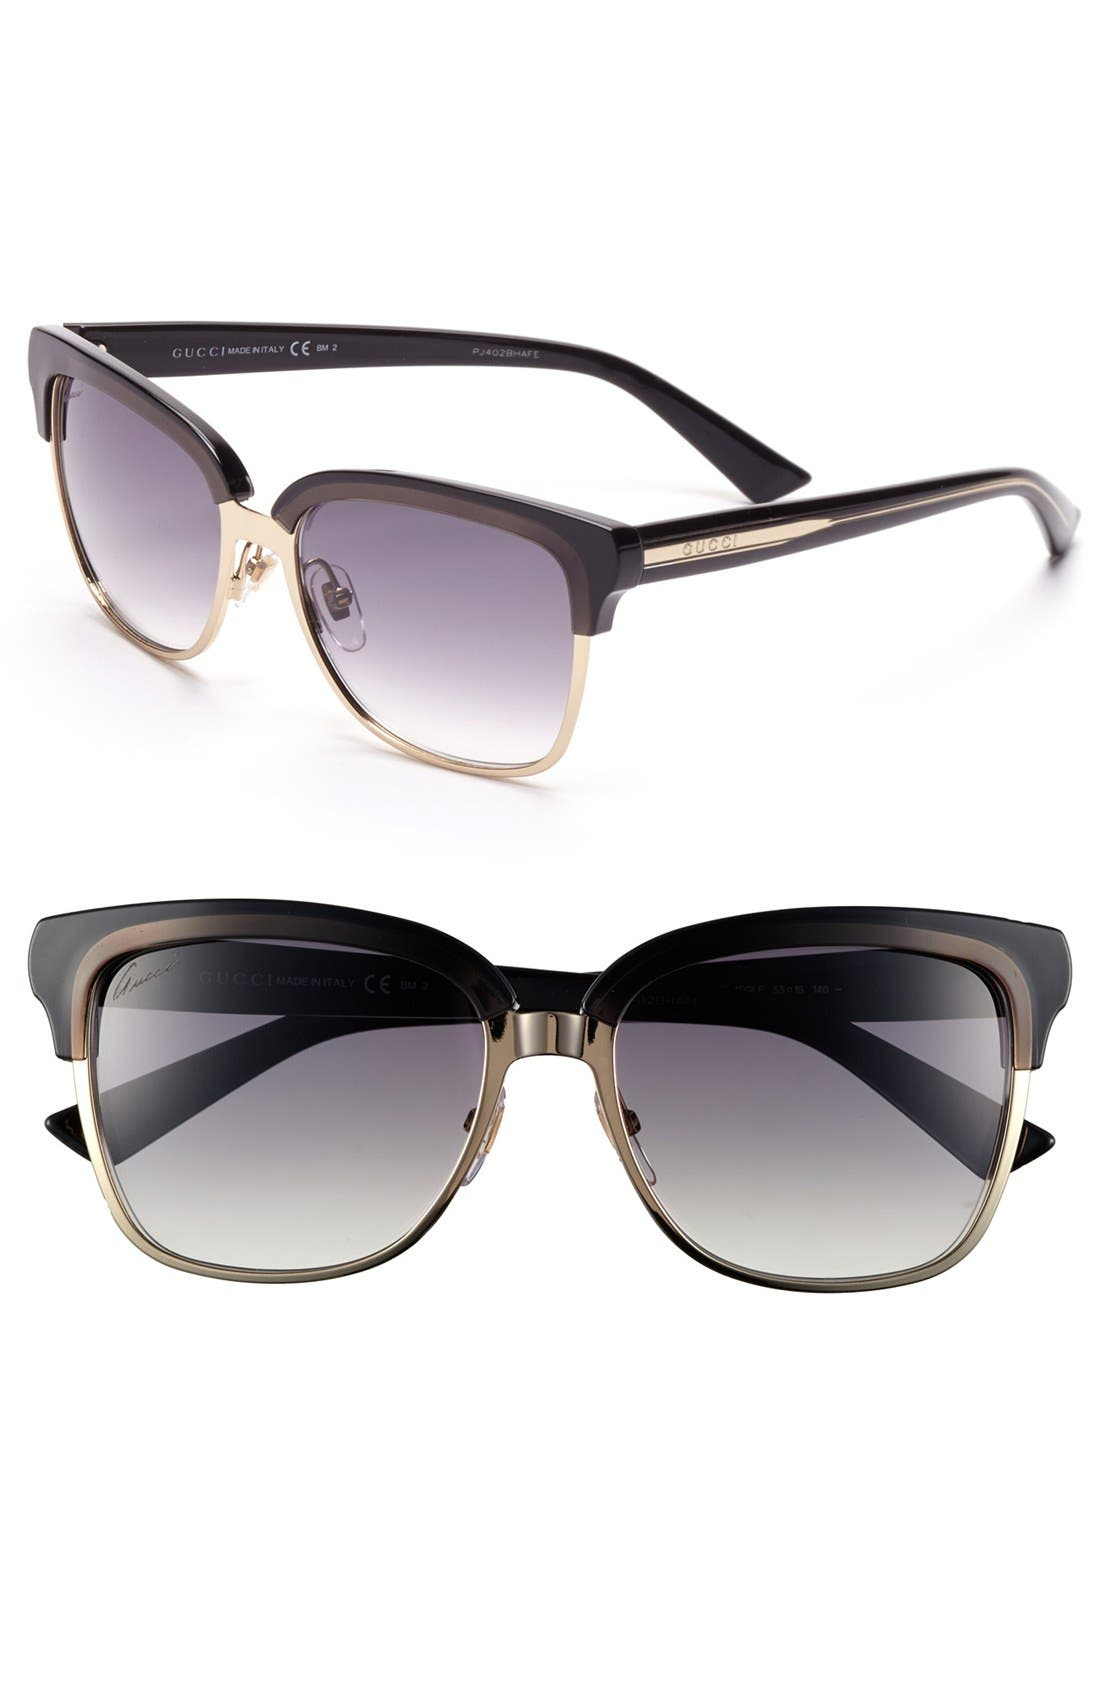 Main Image - Gucci 55mm Retro Sunglasses (Online Only)